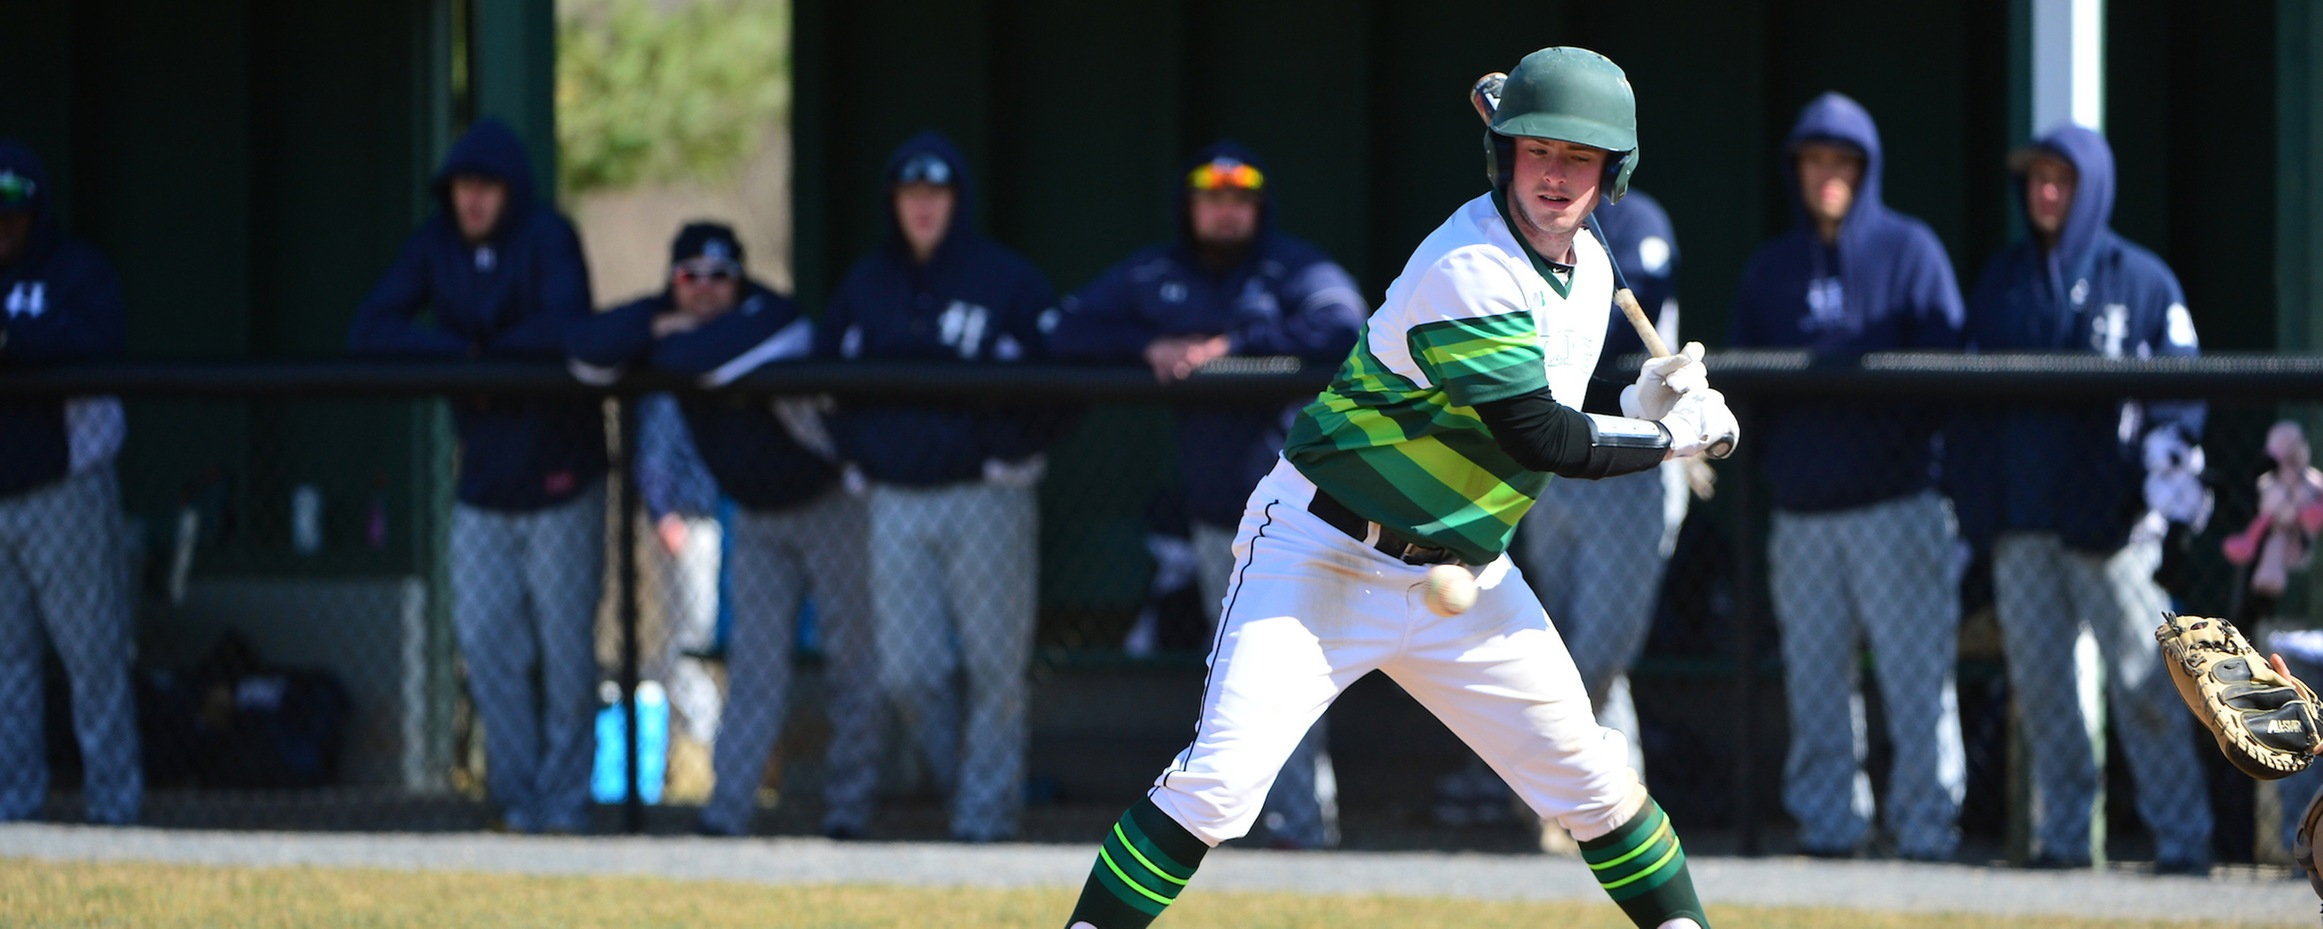 Terrell's Walk-Off Single Gives Mustangs Split With Washington (Md.)